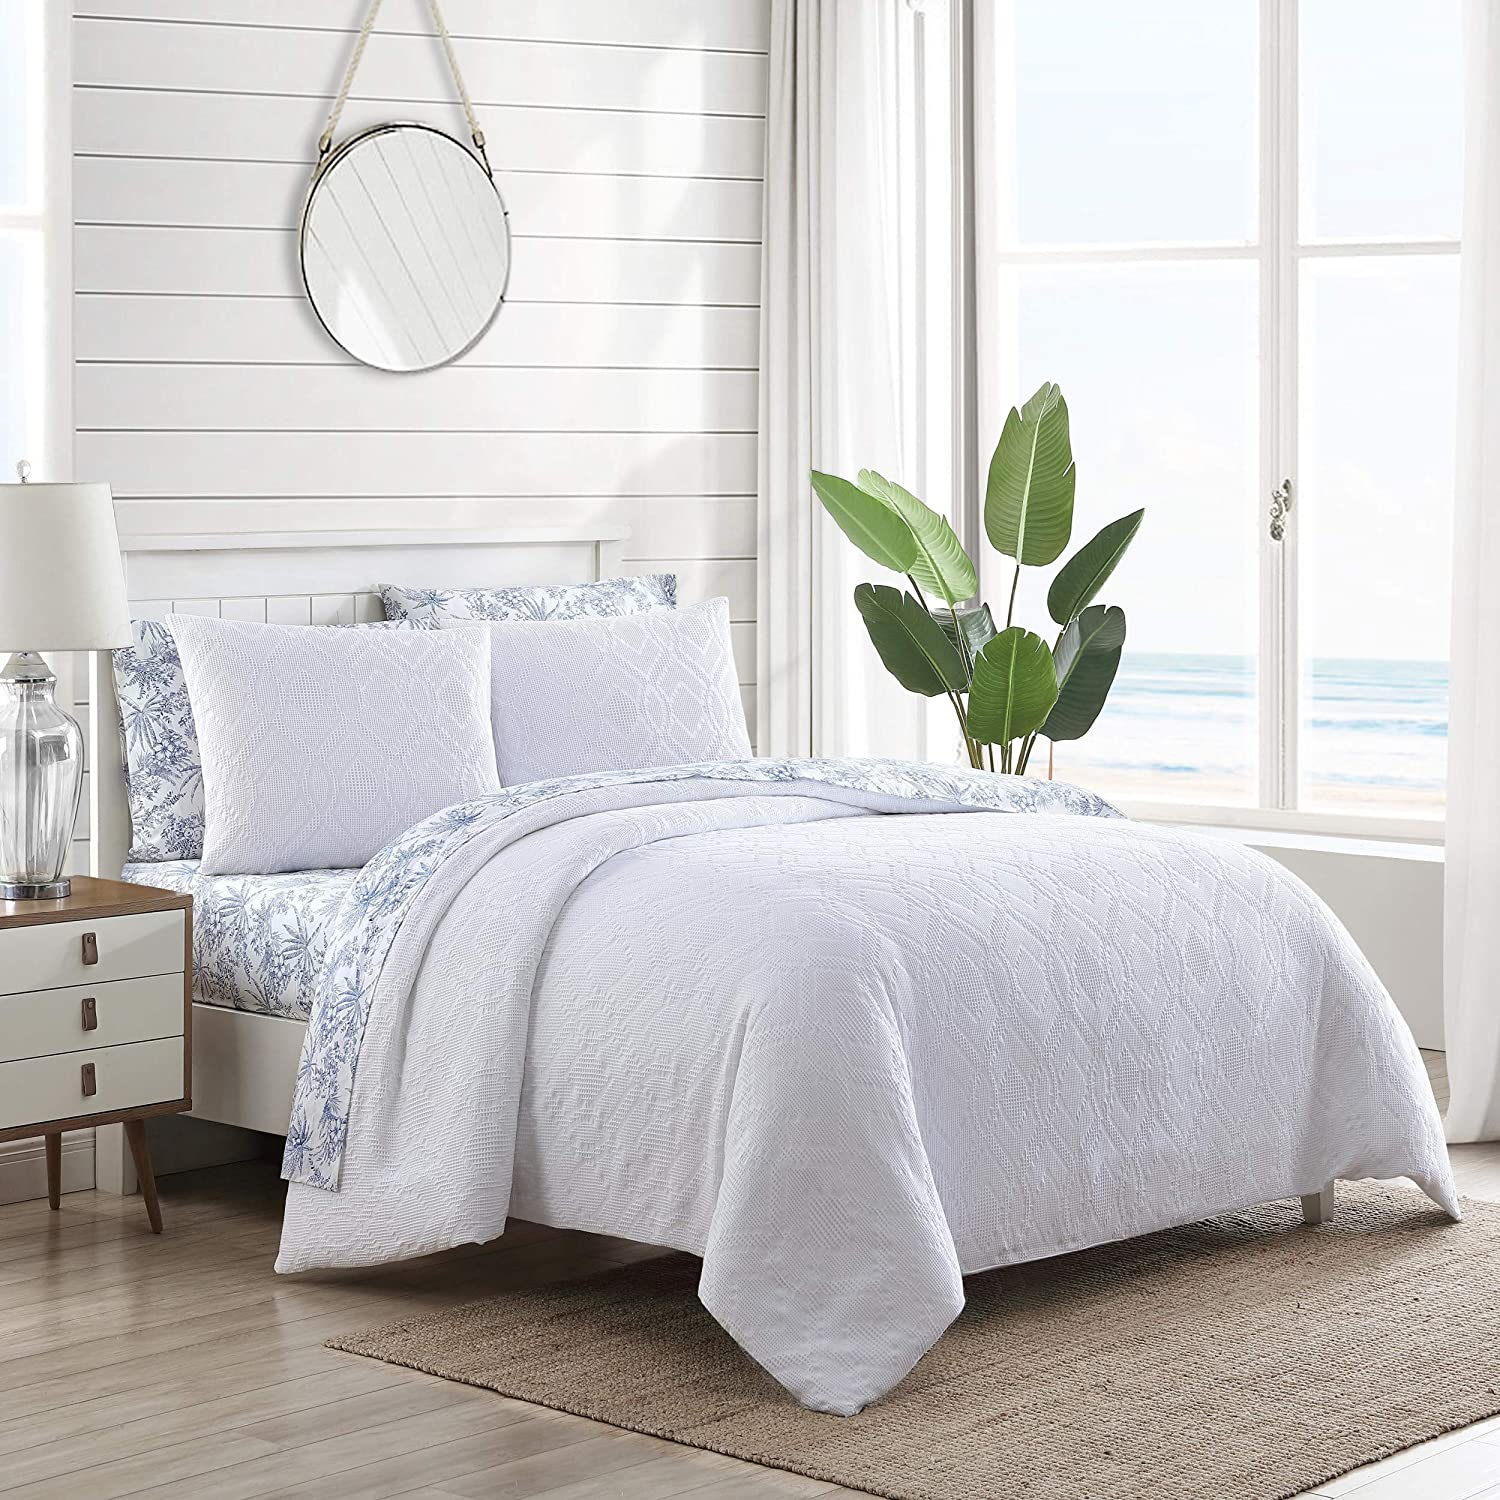 Tommy Bahama | Waffle Collection | Comforter Set Cotton Bedding in a Reversible Waffle Weave Texture, Queen, White